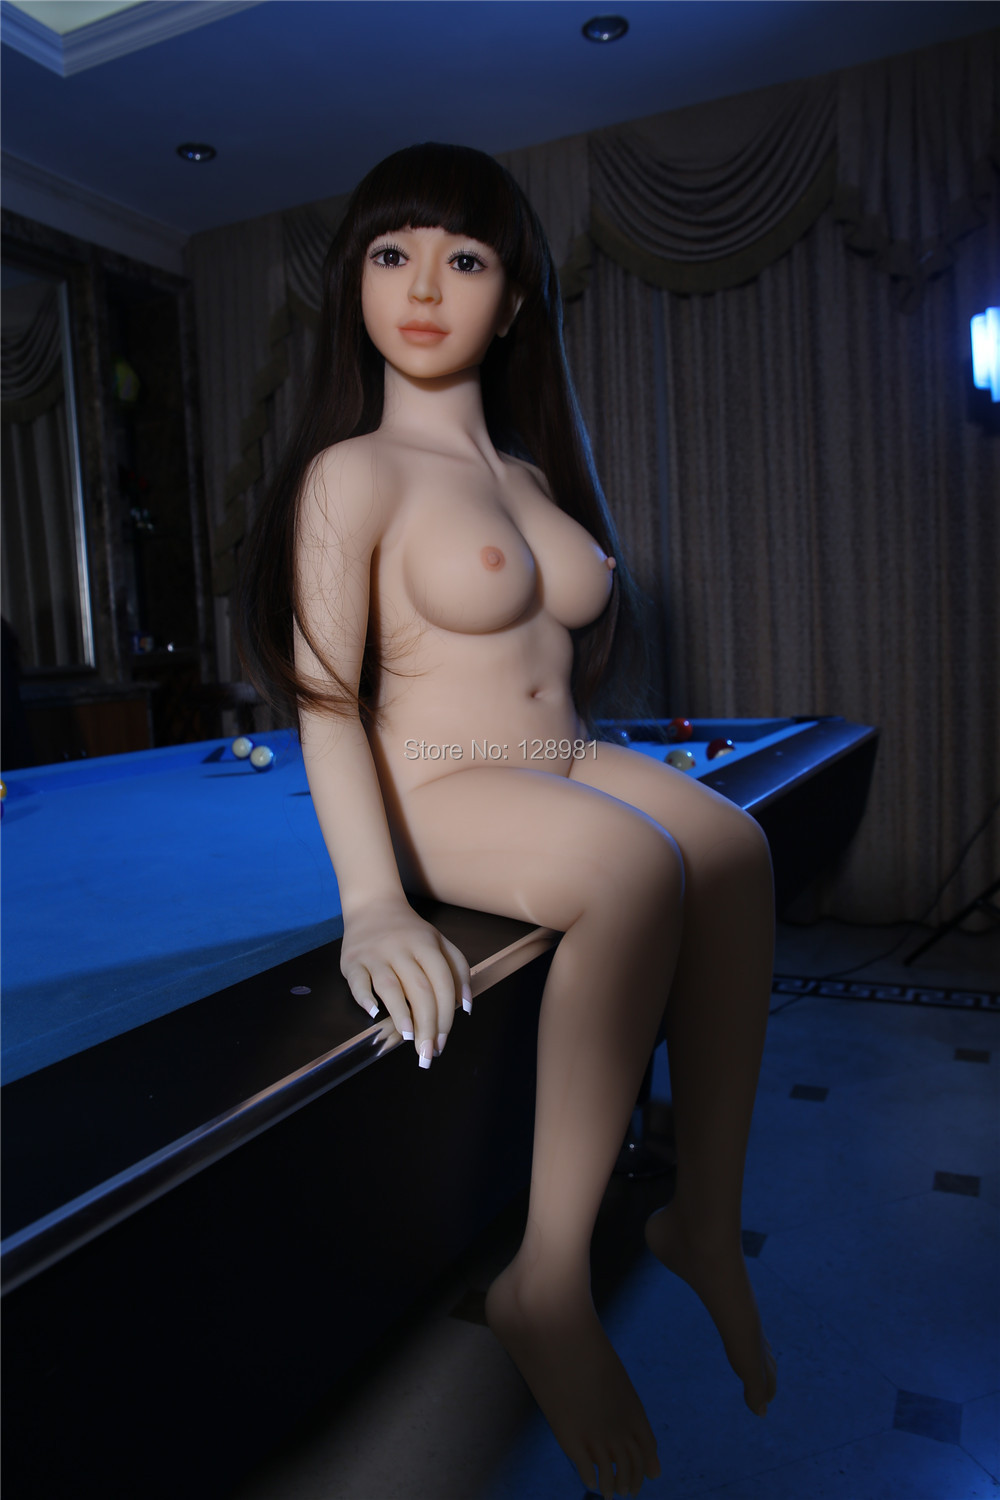 125cm vagina anal two holes black long hair naked real silicone sex doll <br>